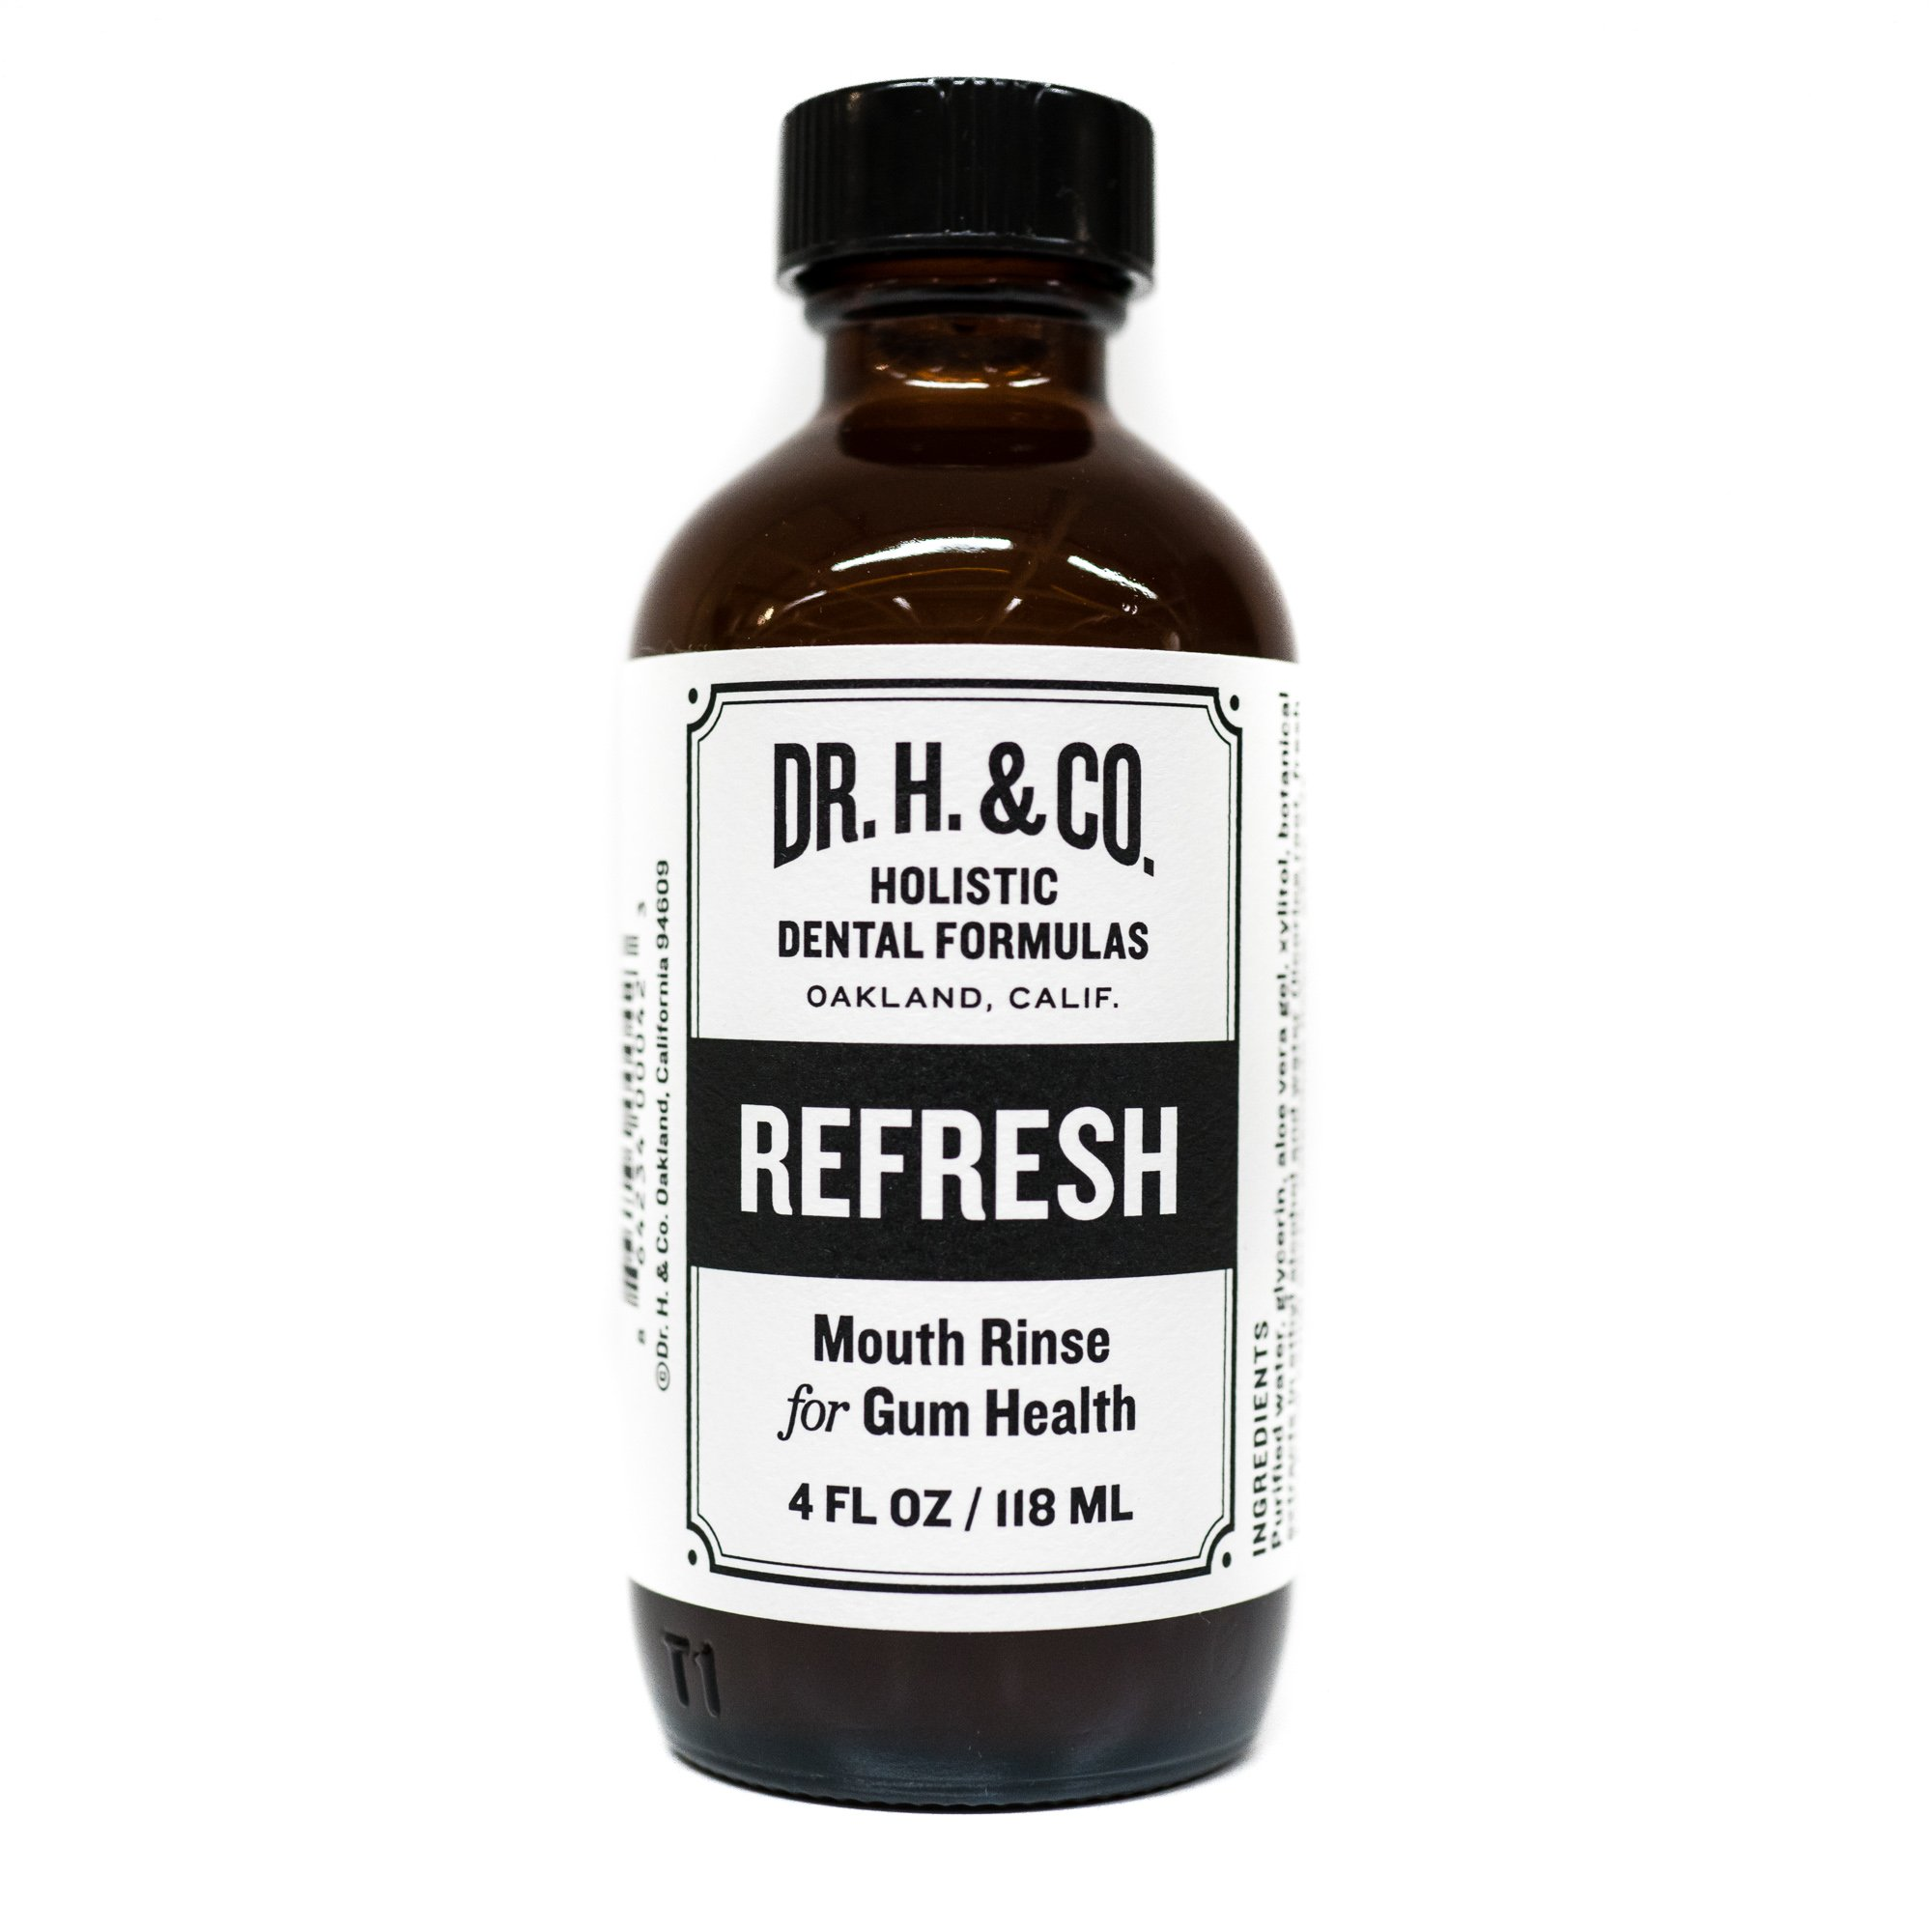 Dr. H. & Co. Dentist Formulated Refresh Mouthwash Ð All Natural Herbal and Holistic Mouth Rinse for Healthy Gums and Teeth (4 oz Glass Bottle)